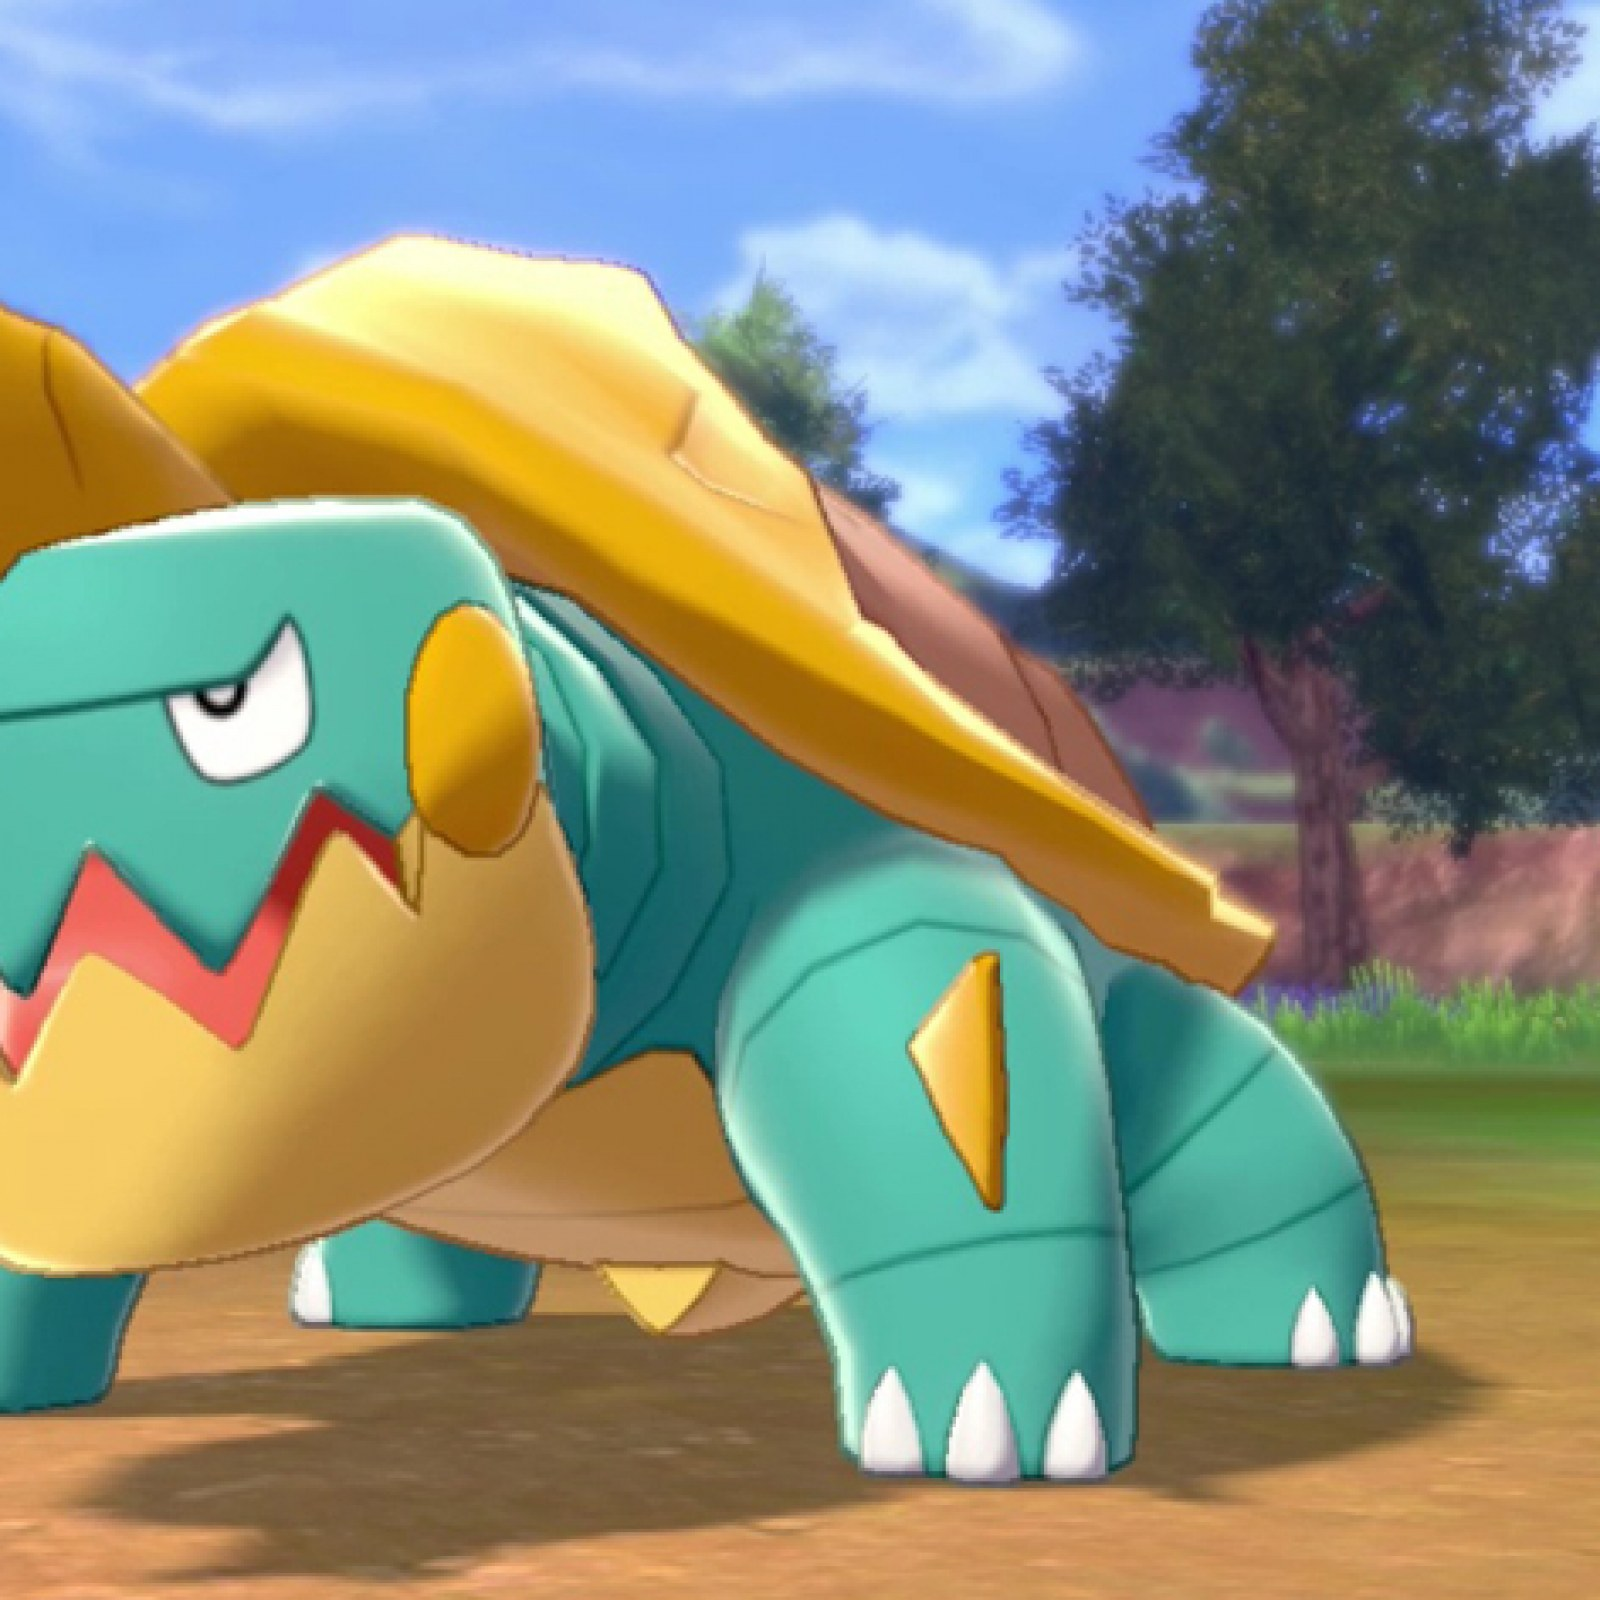 Game Freak Confirms Models In Pokémon Sword And Shield